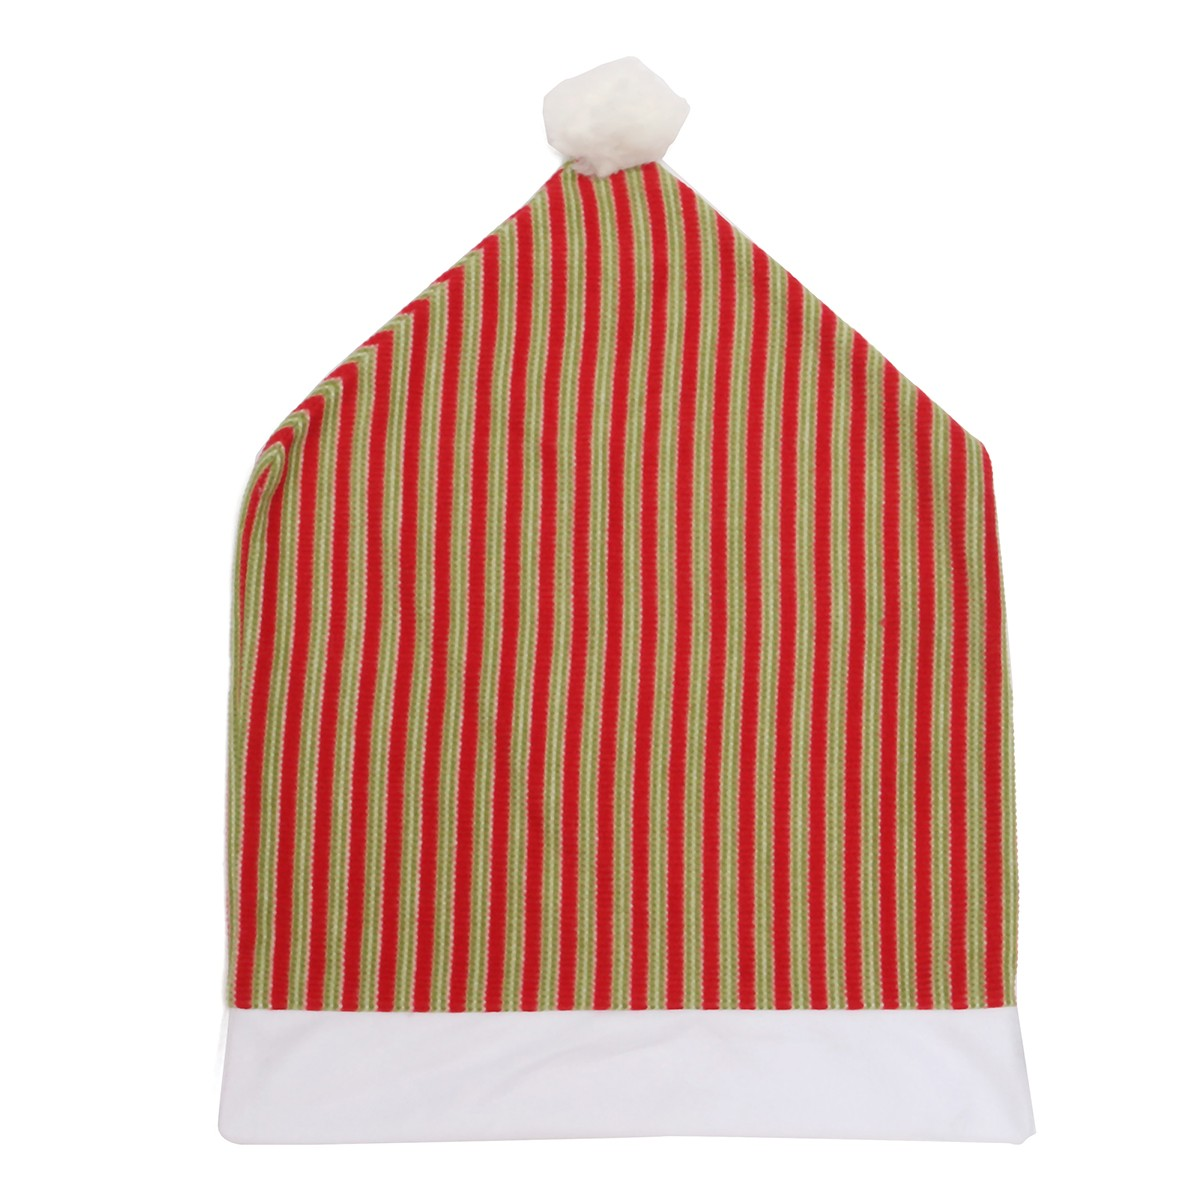 70x50cm Christmas Vertical Stripes Chair Seat Cover Hotel Dining Room Wedding Kitchen Decor